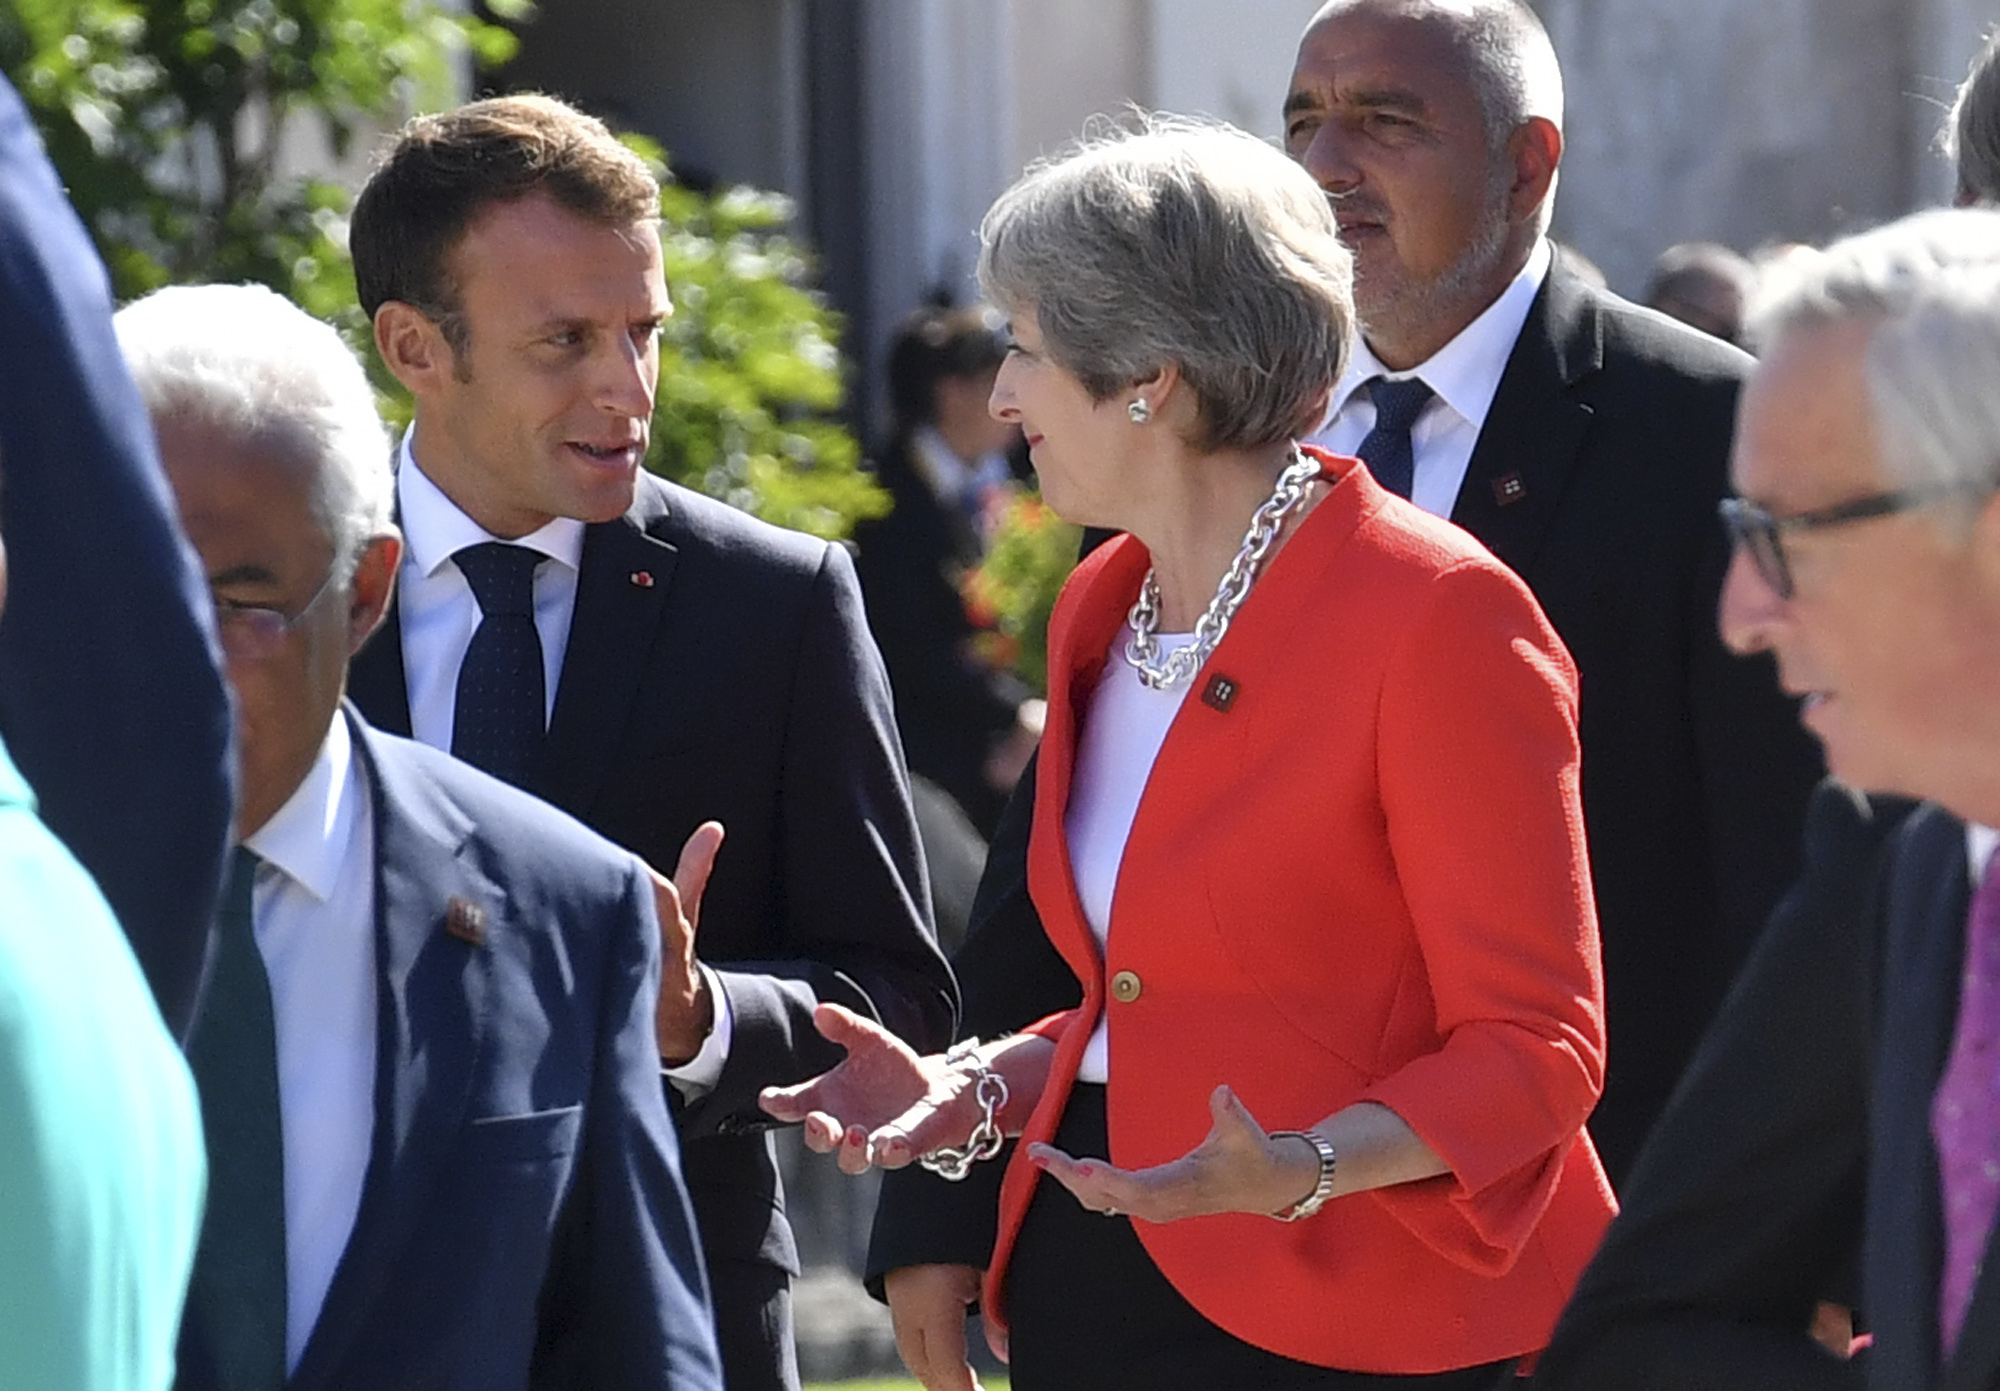 French president Emmanuel Macron was not won over by Theresa May's plan (AP Photo/Kerstin Joensson).